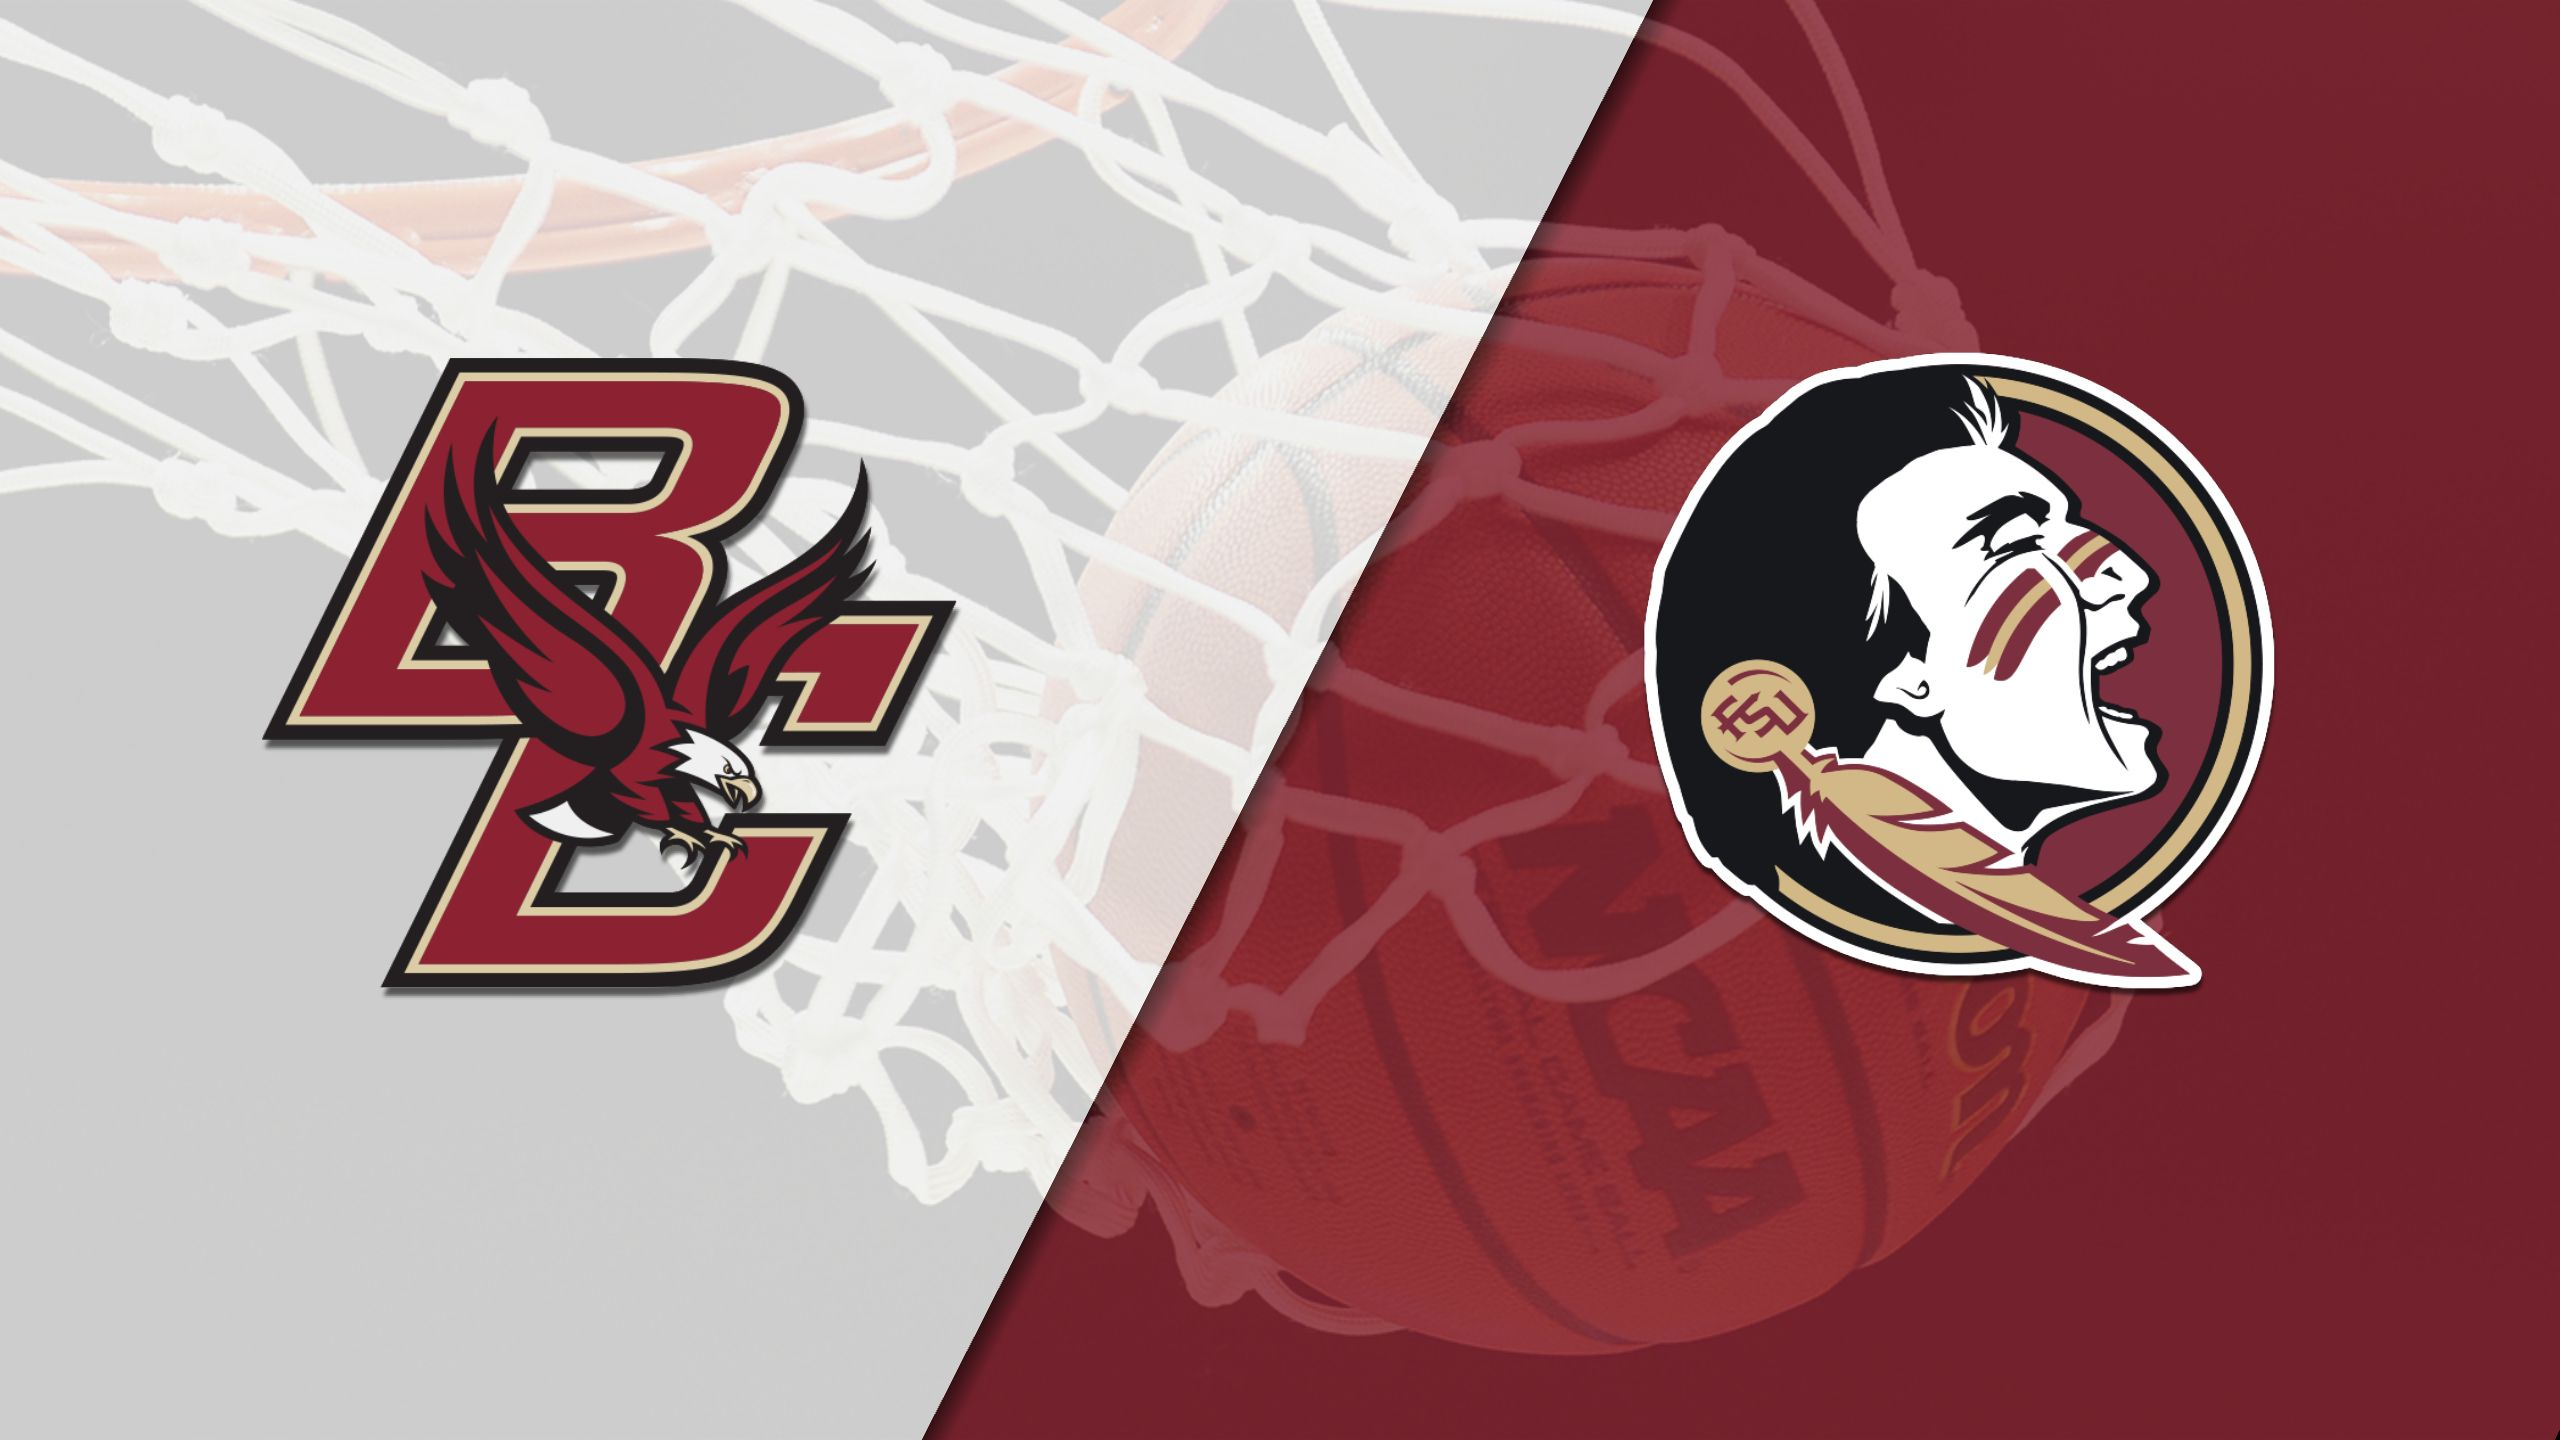 Boston College vs. #9 Florida State (W Basketball)